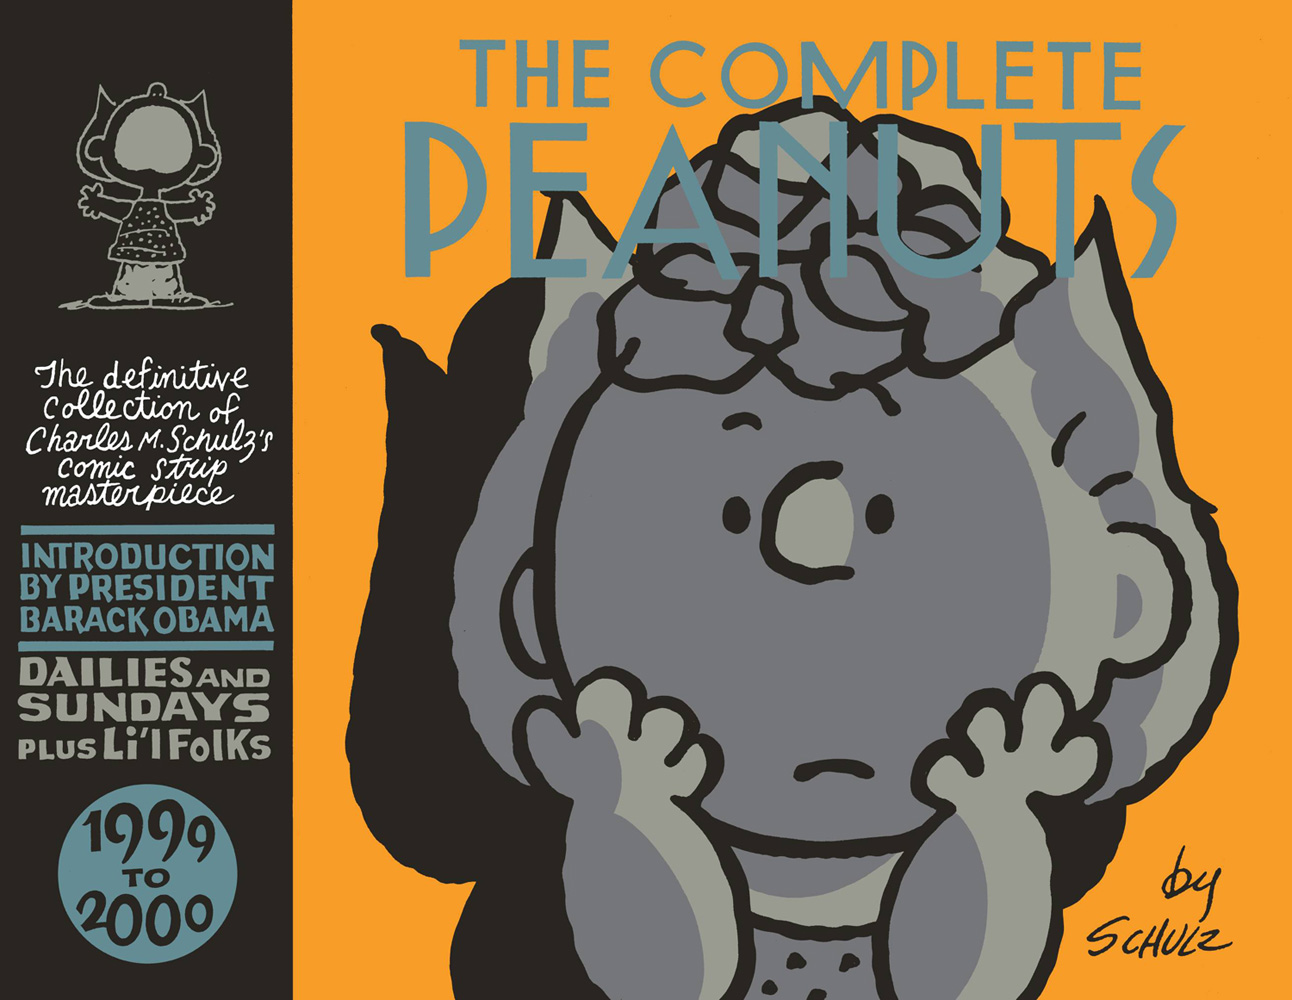 The Complete Peanuts Vol. 25